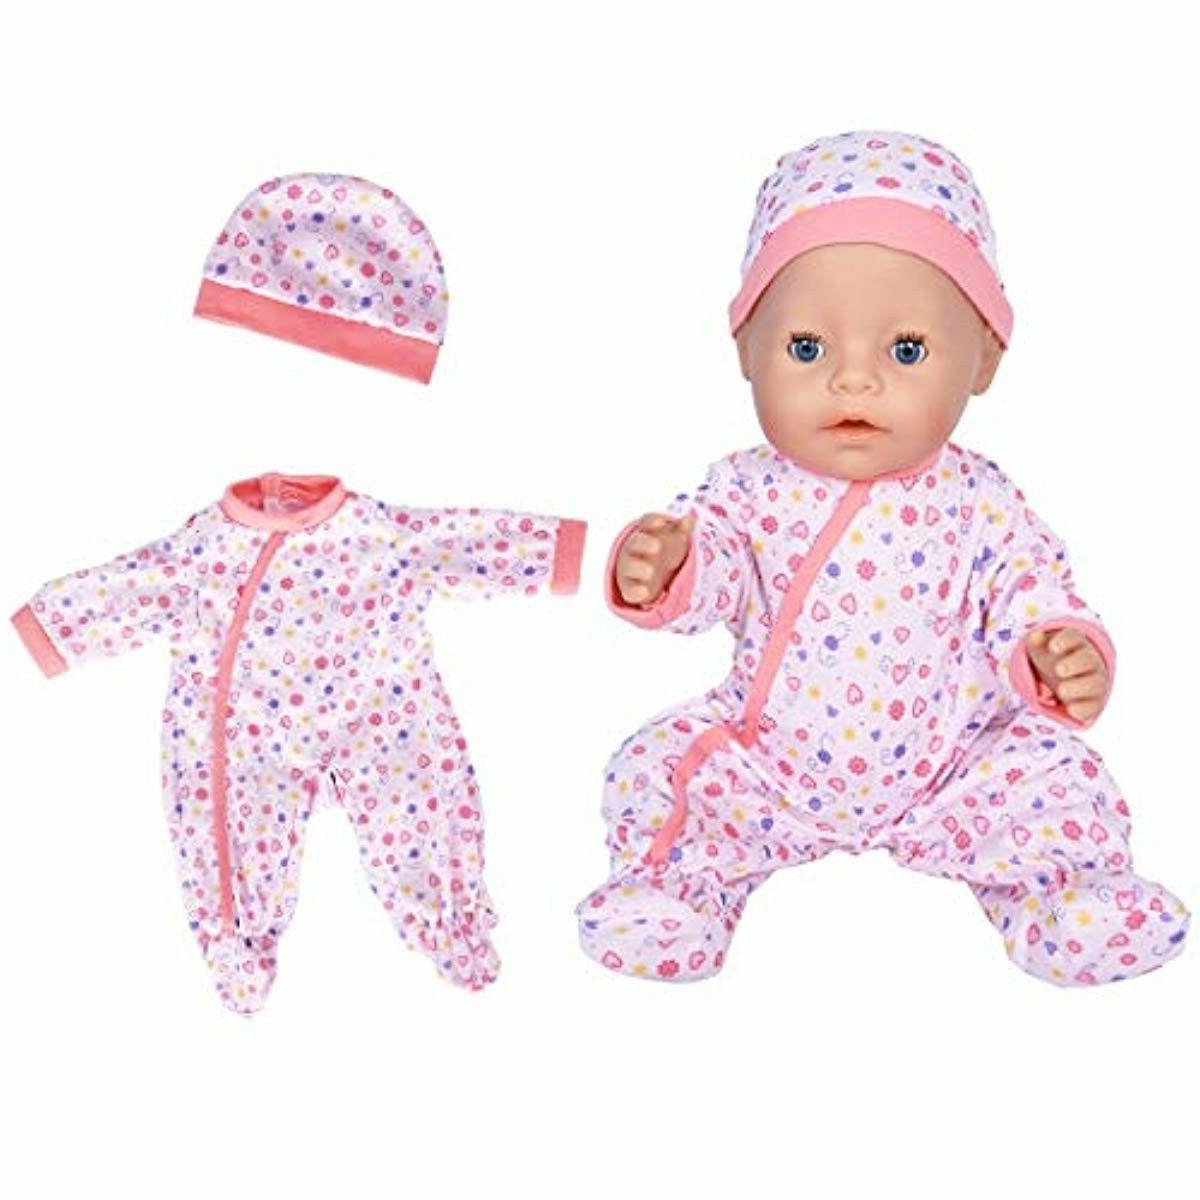 7 with and for 43cm New Born Baby Dolls/ 15 inch Bitty